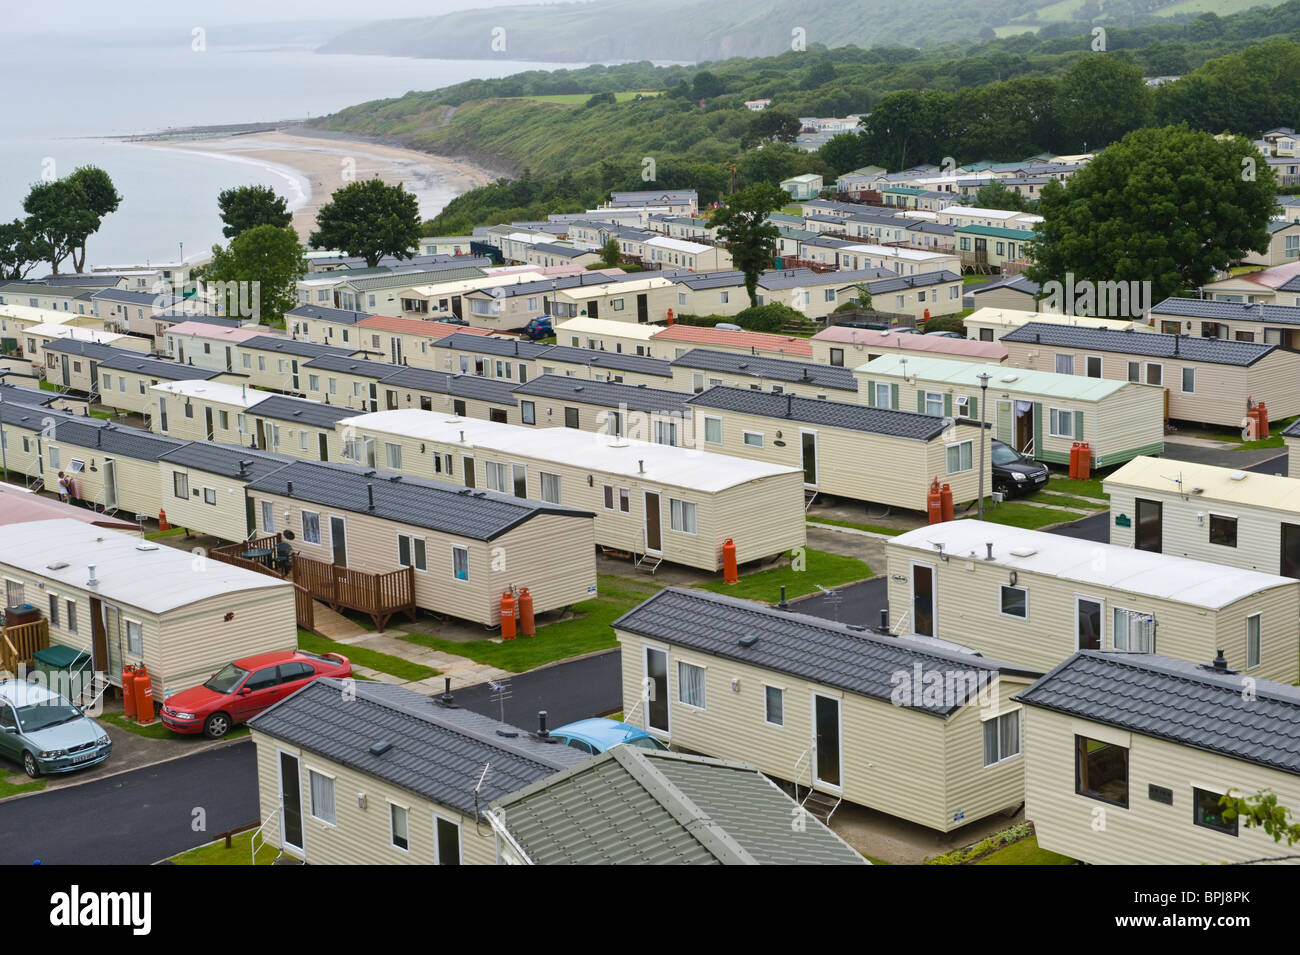 Caravan park of family holiday caravans outside the seaside town of New Quay Ceredigion West Wales UK - Stock Image